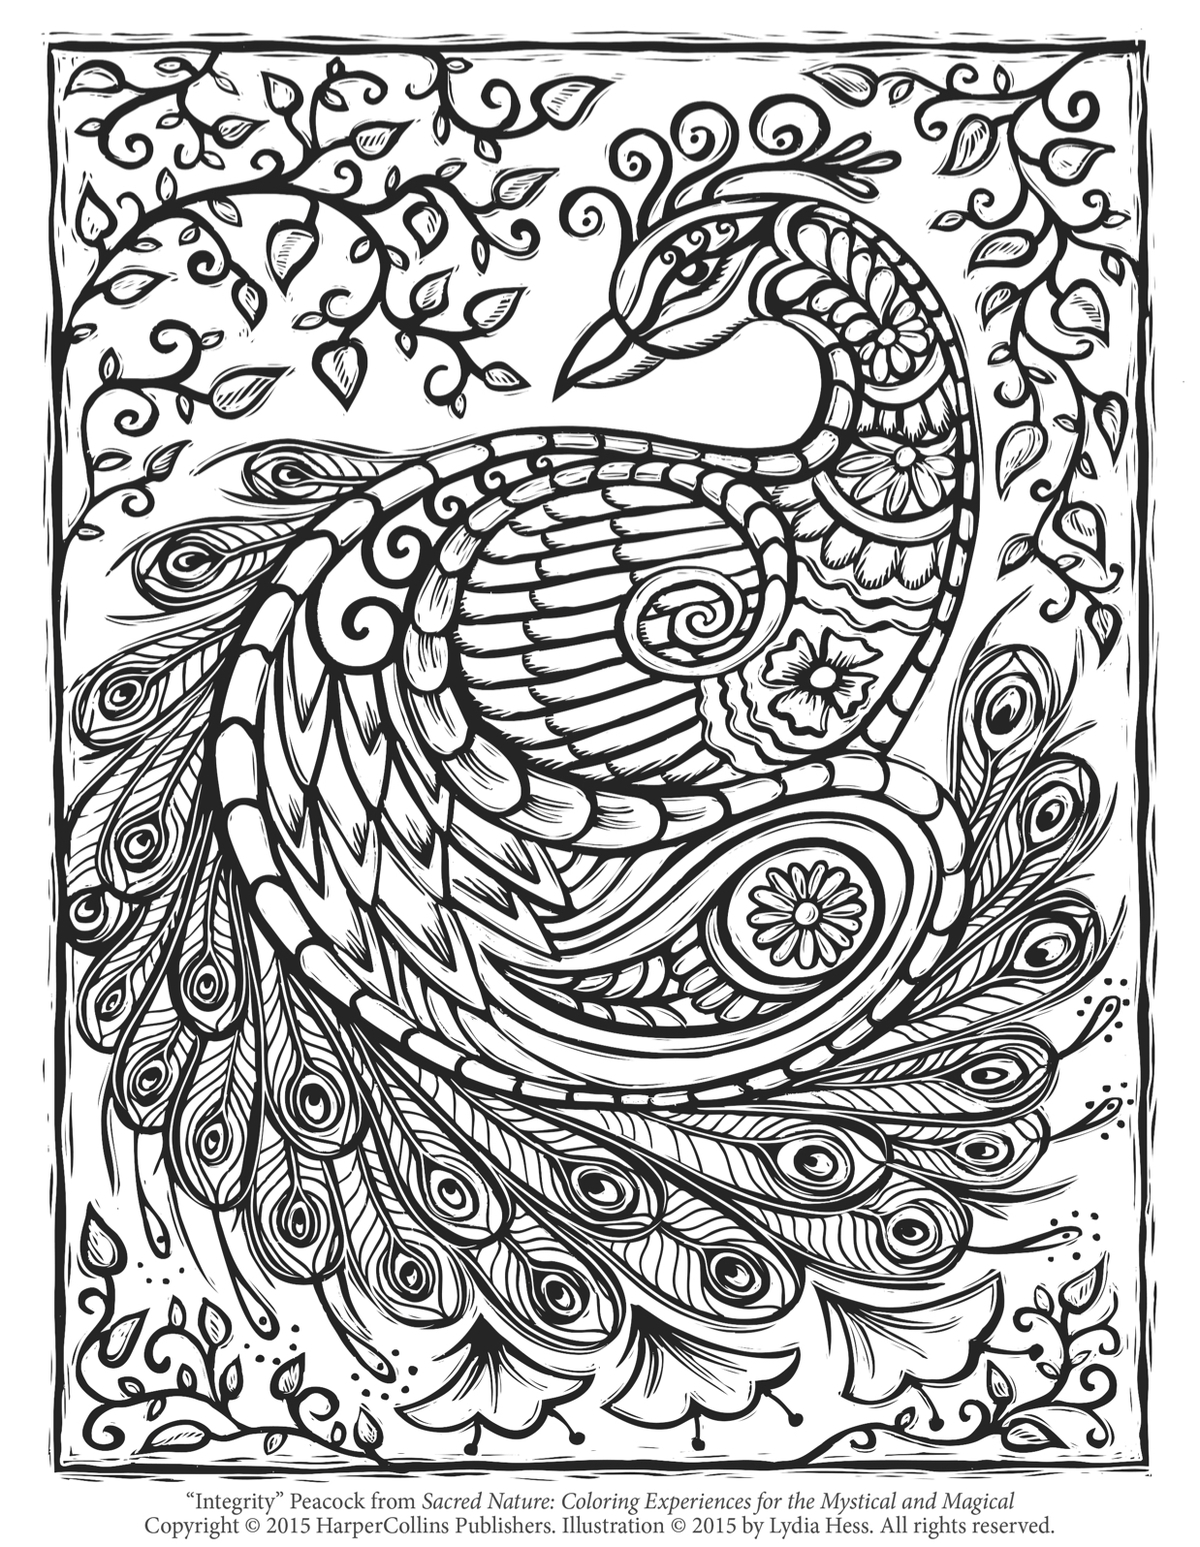 colouring pictures of peacock peacock coloring pages to download and print for free pictures of peacock colouring